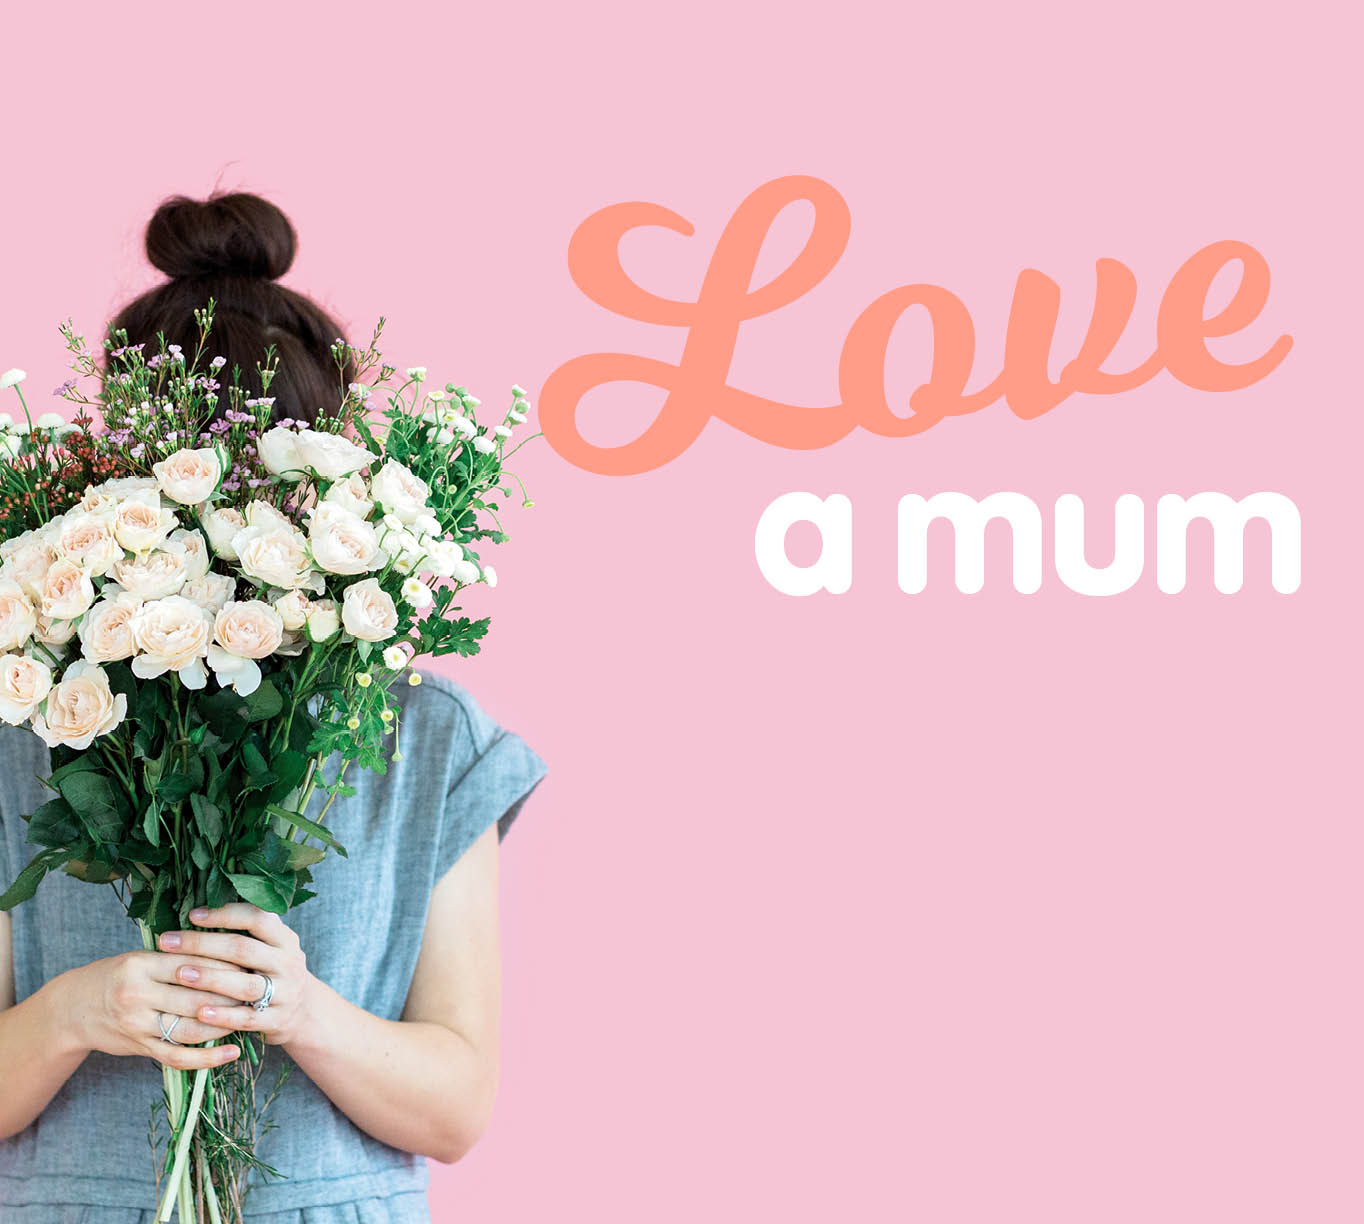 CH5438_Charter Hall_Mothers Day_Love a Mum_Web Tiles_682x612